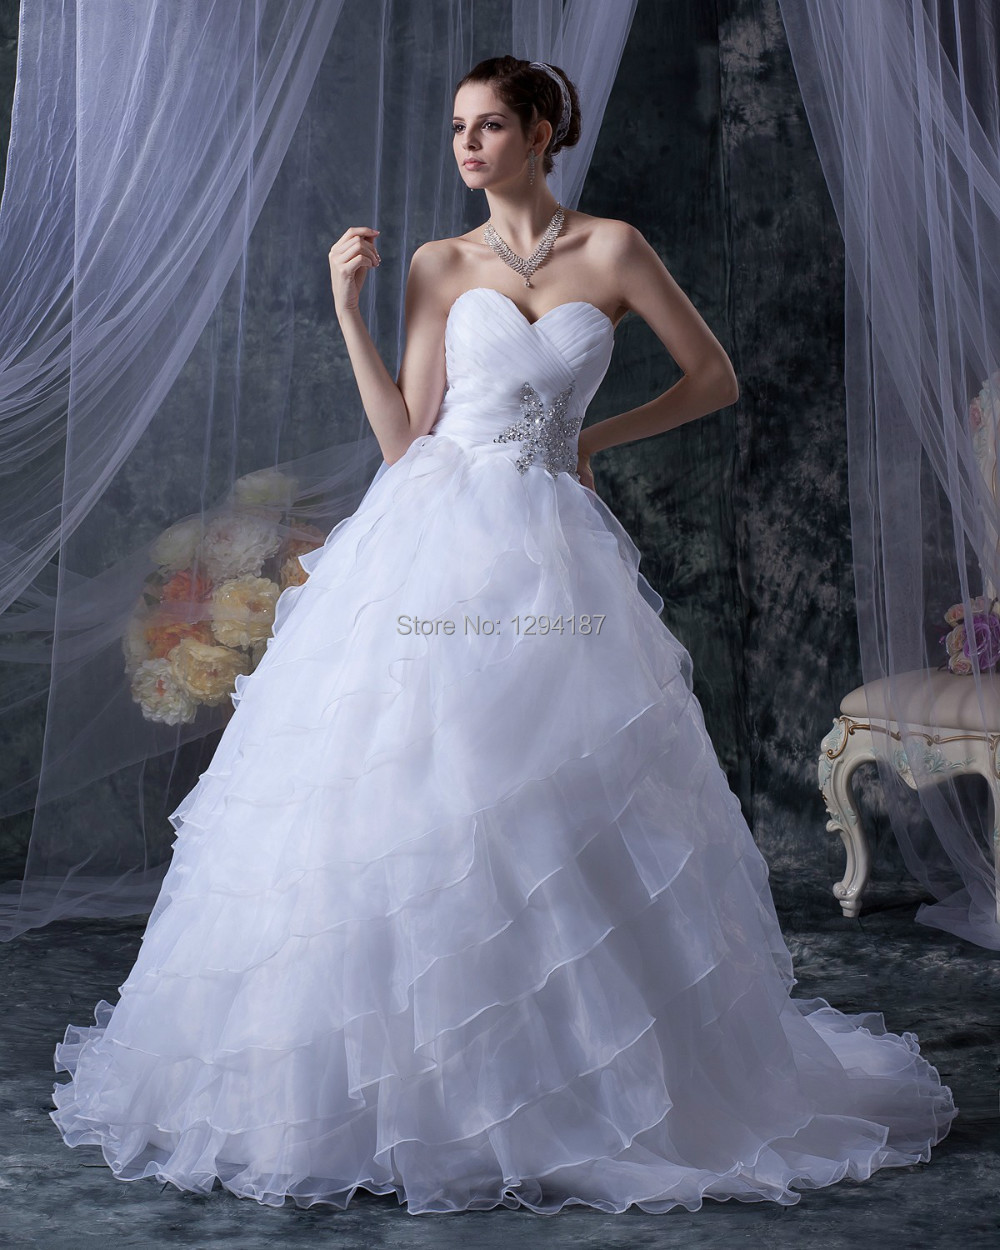 Sweetheart wedding dresses 2015 layered tiered organza for Wedding dresses with ruffles